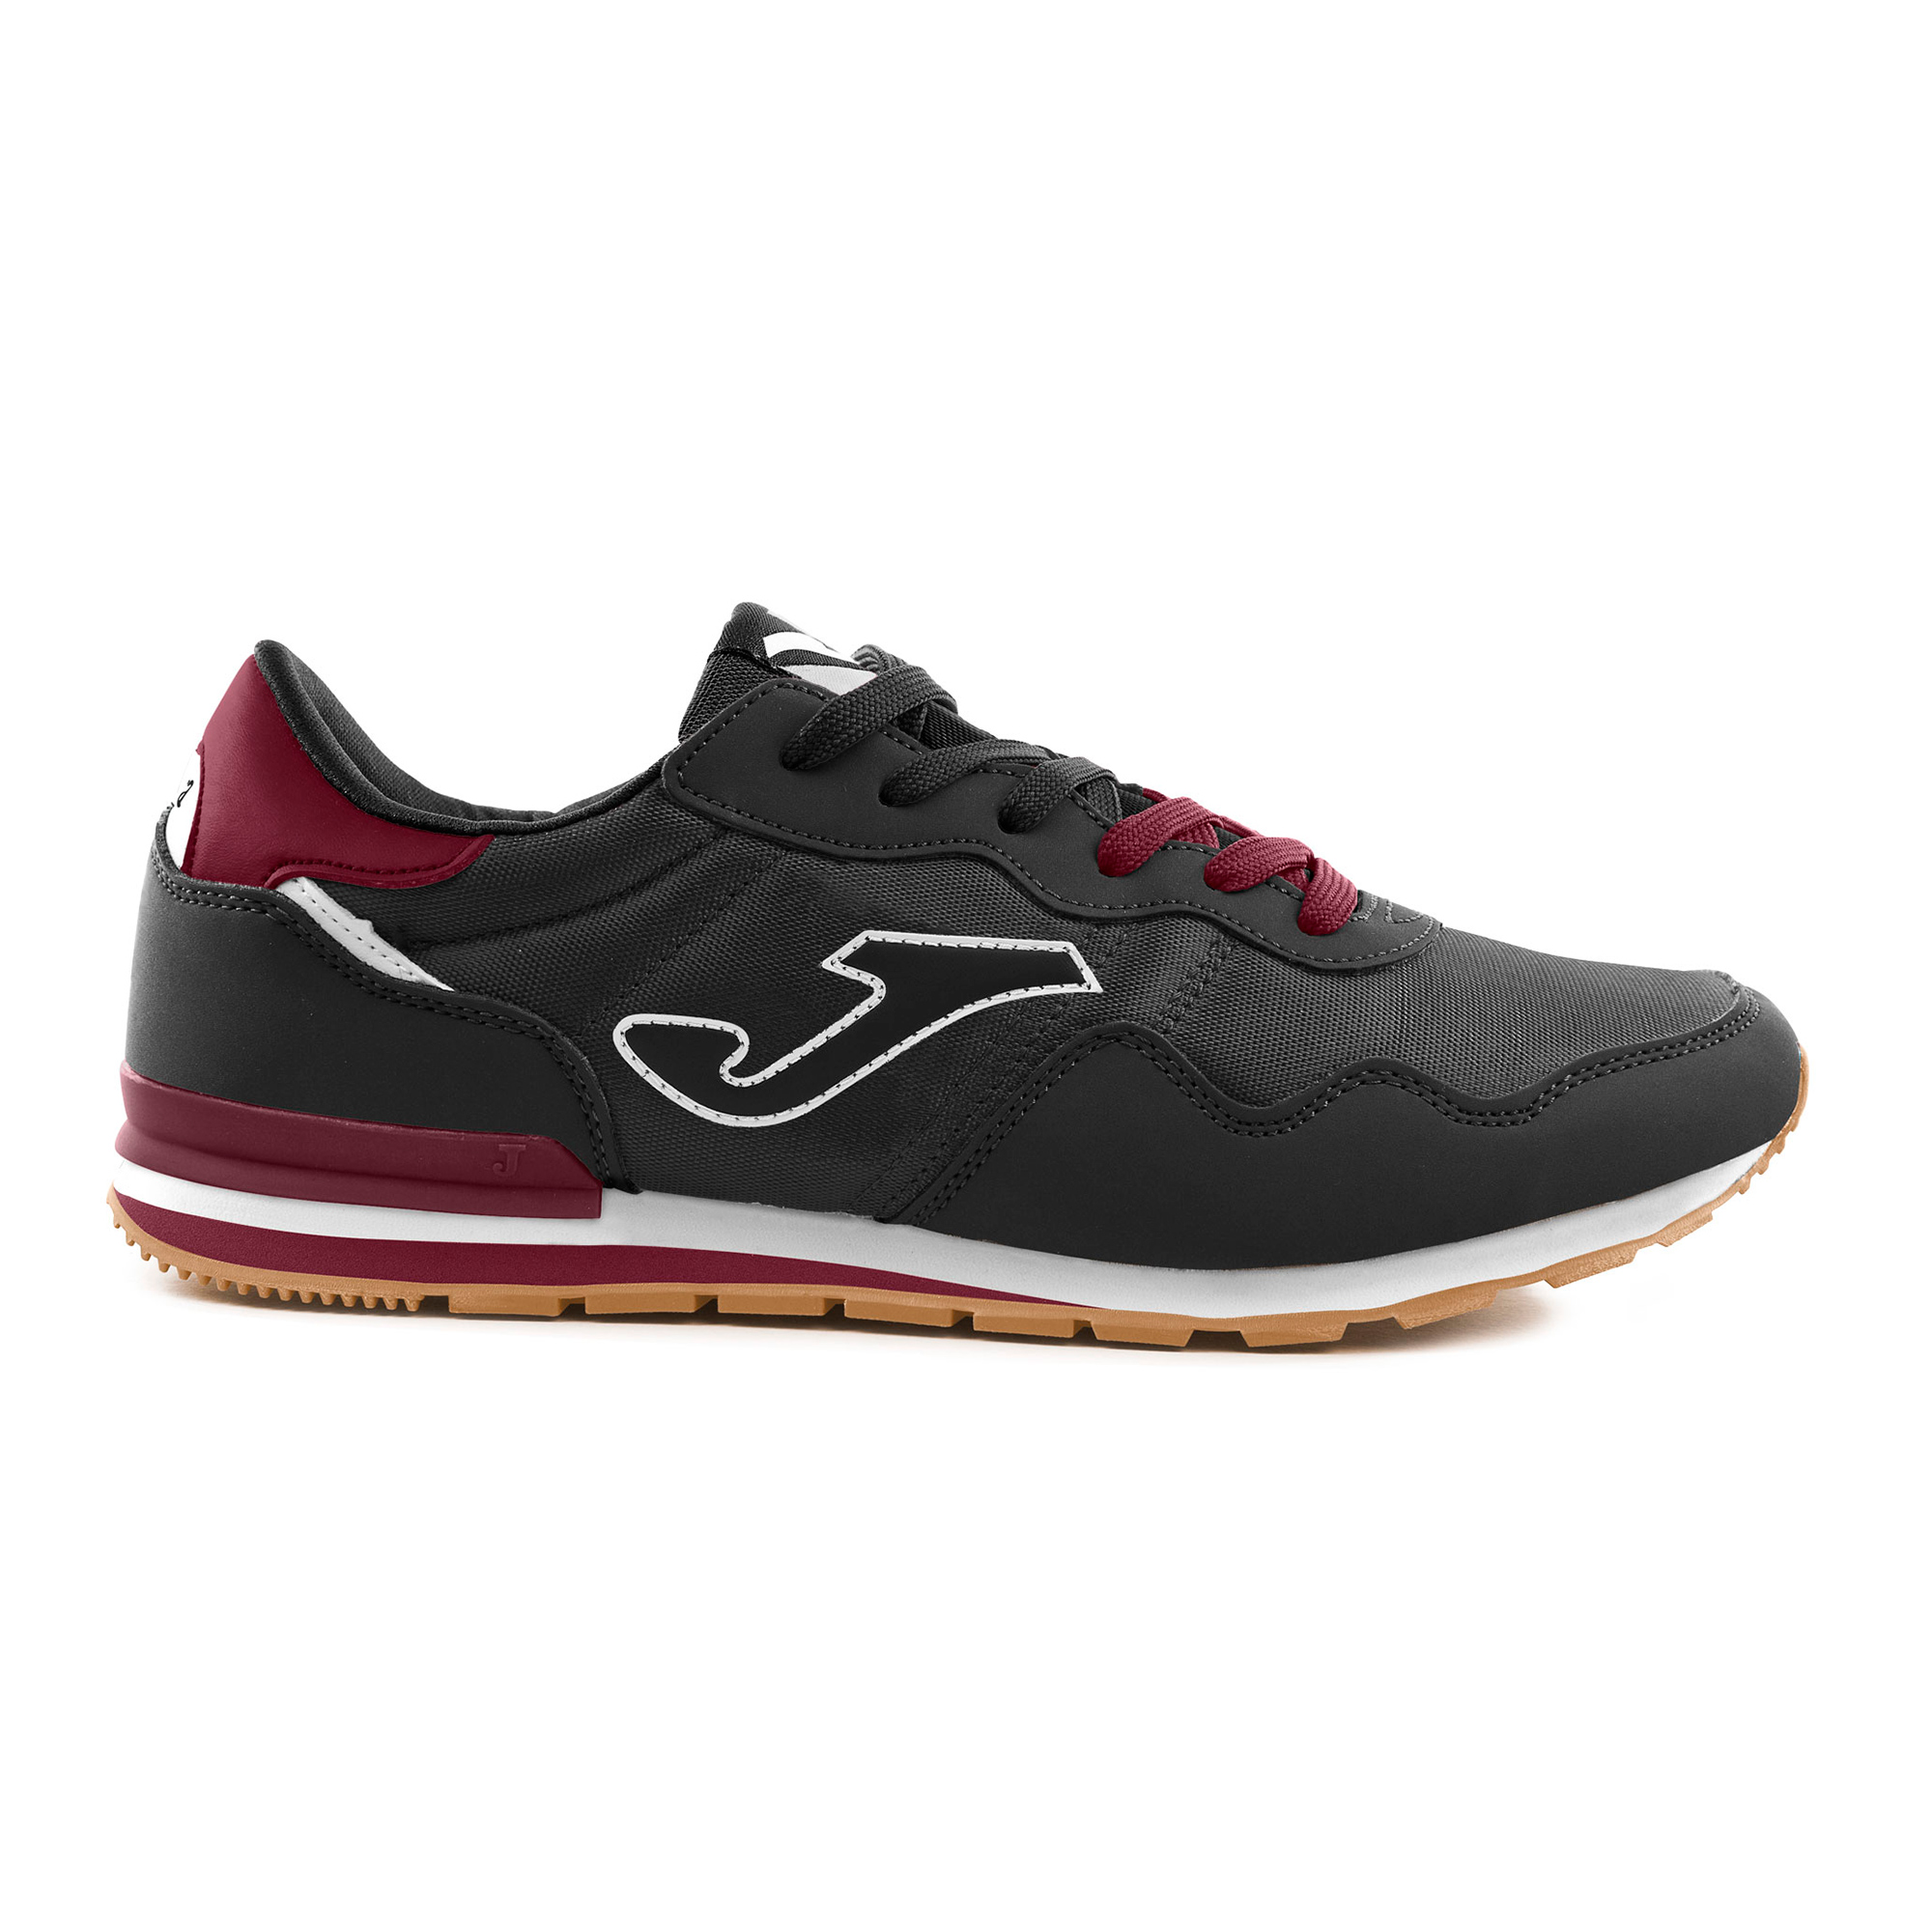 Comprar Joma  Shoes C.357 Men 901 black